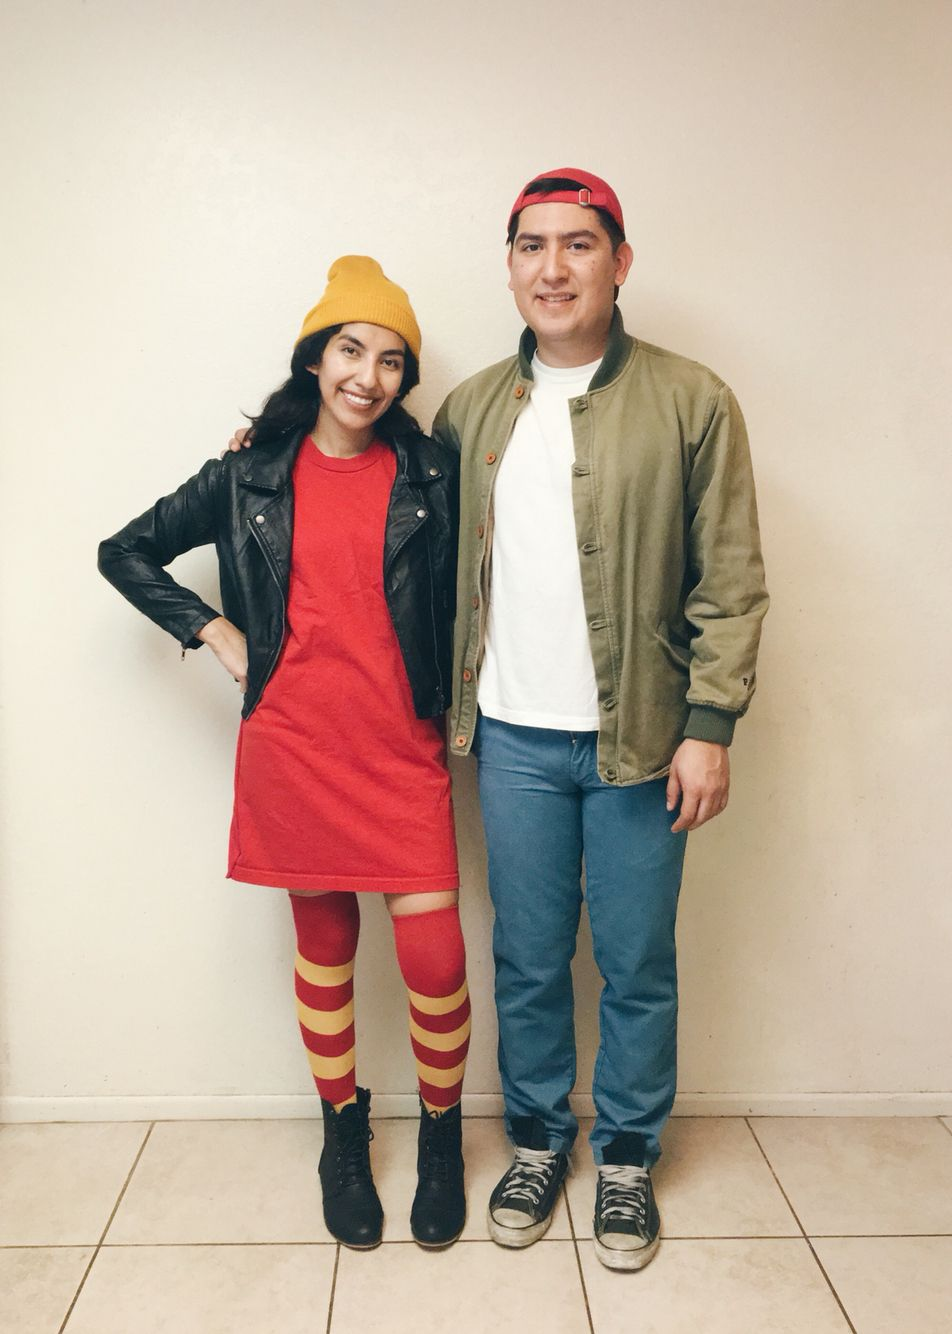 tj and spinelli from recess | diy halloween costume | diy | costumes